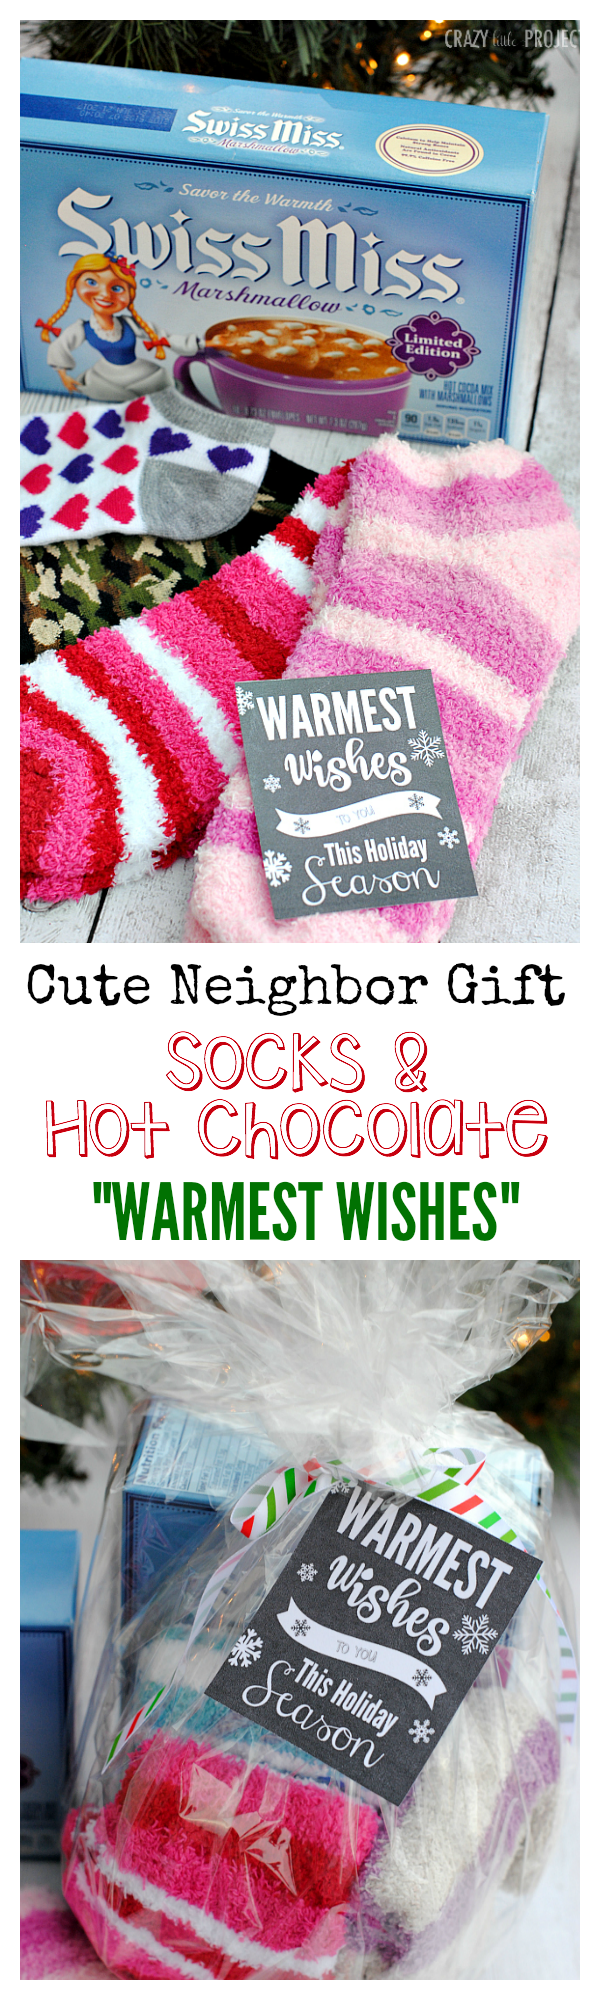 Neighbor Christmas Gift Ideas | Warmest Wishes Neighbor Gift | Crazy Little Projects